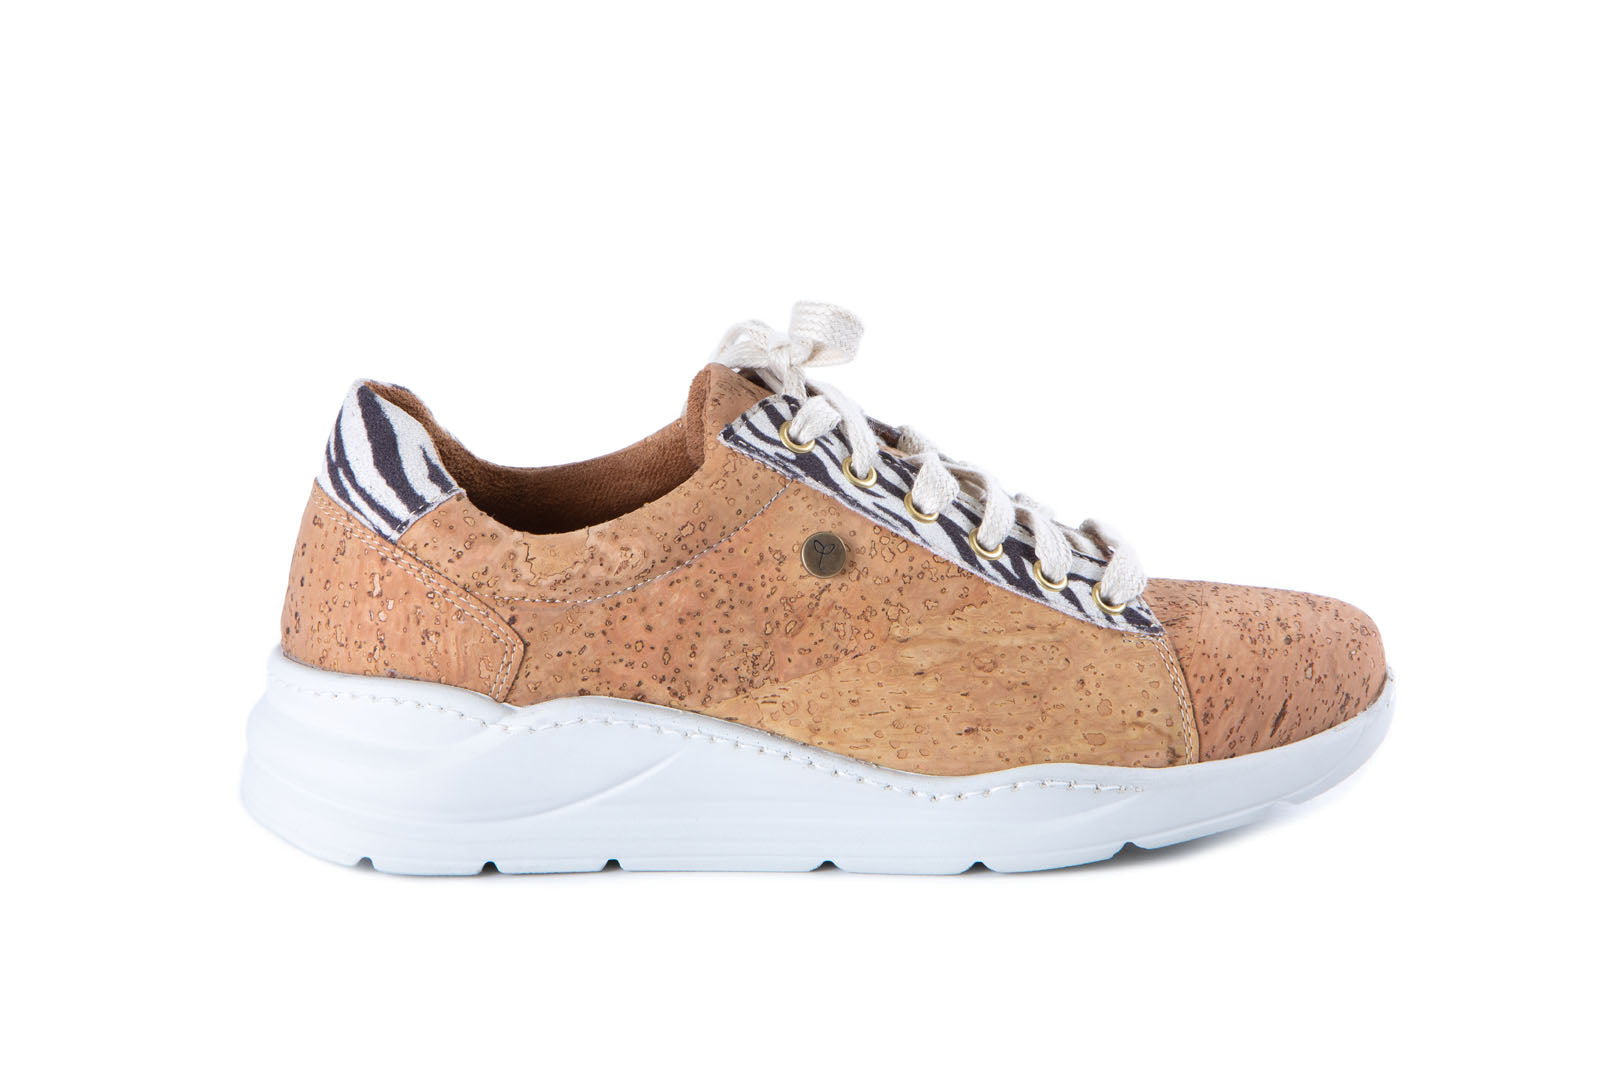 The Wilde | Cork Sneakers